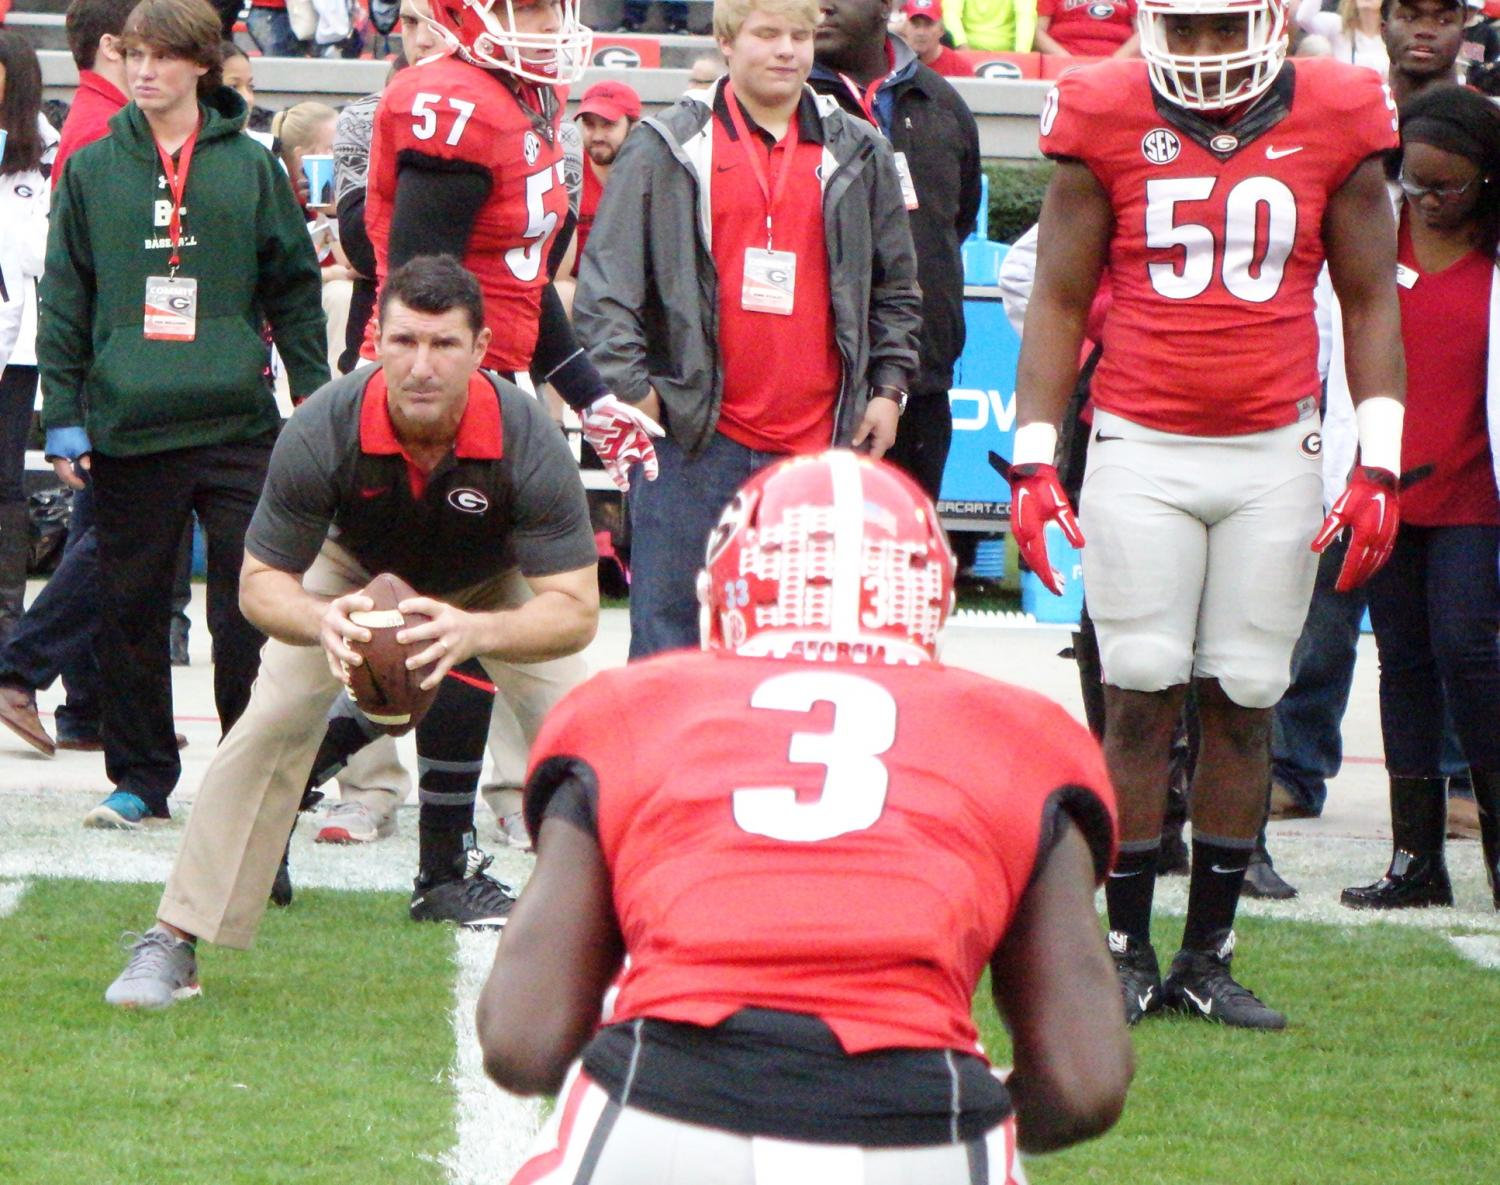 Coach Ekeler with LB Roquan Smith - Kentucky vs. Georgia pregame 07-Nov-2015 (Photo by Bulldawg Illustrated's Greg Poole)